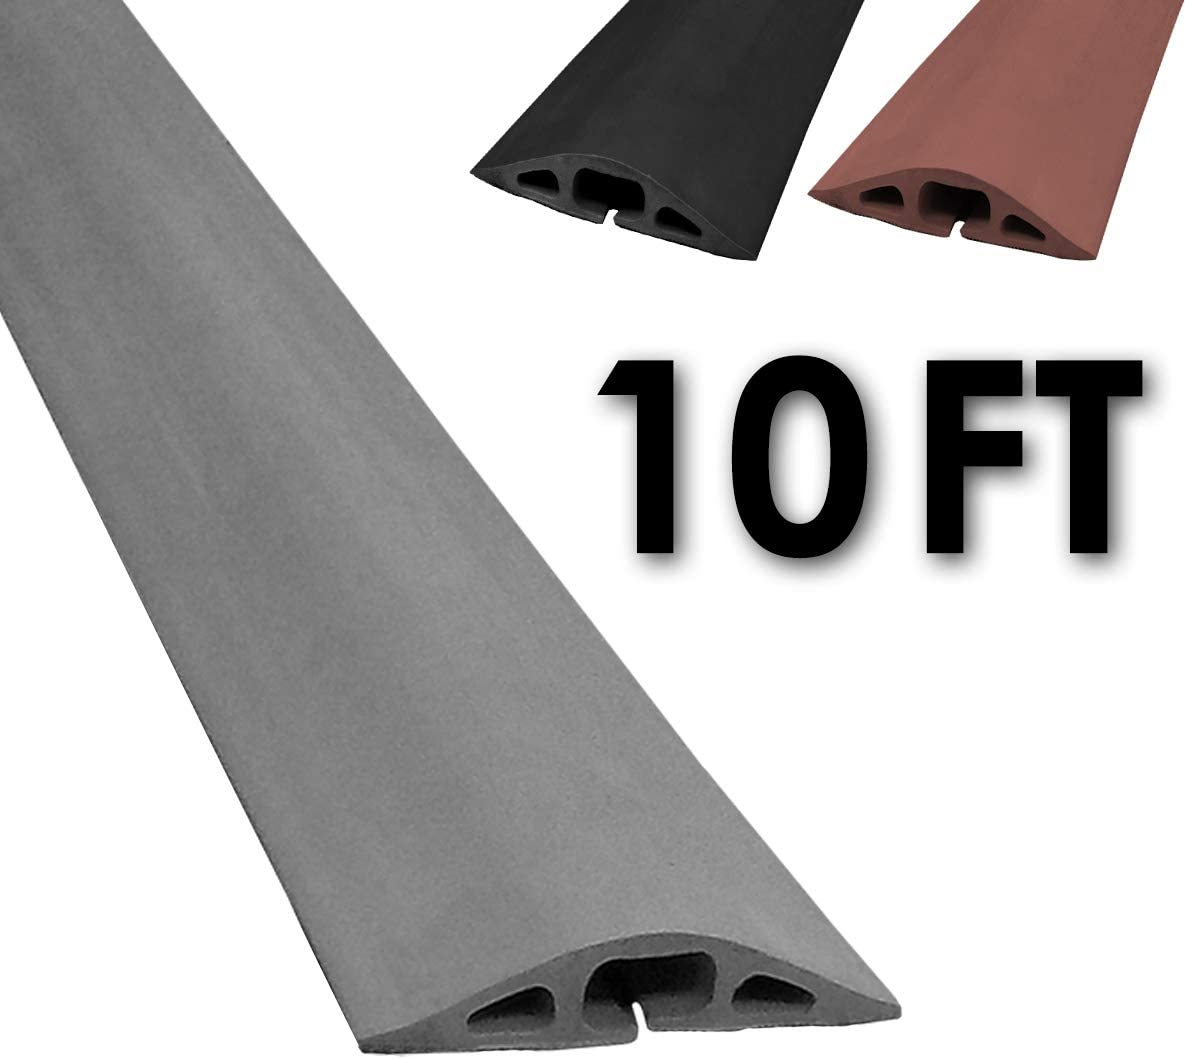 Electriduct D-2 Rubber Duct Cord Cover - 10 Feet Gray Floor Cable Protector